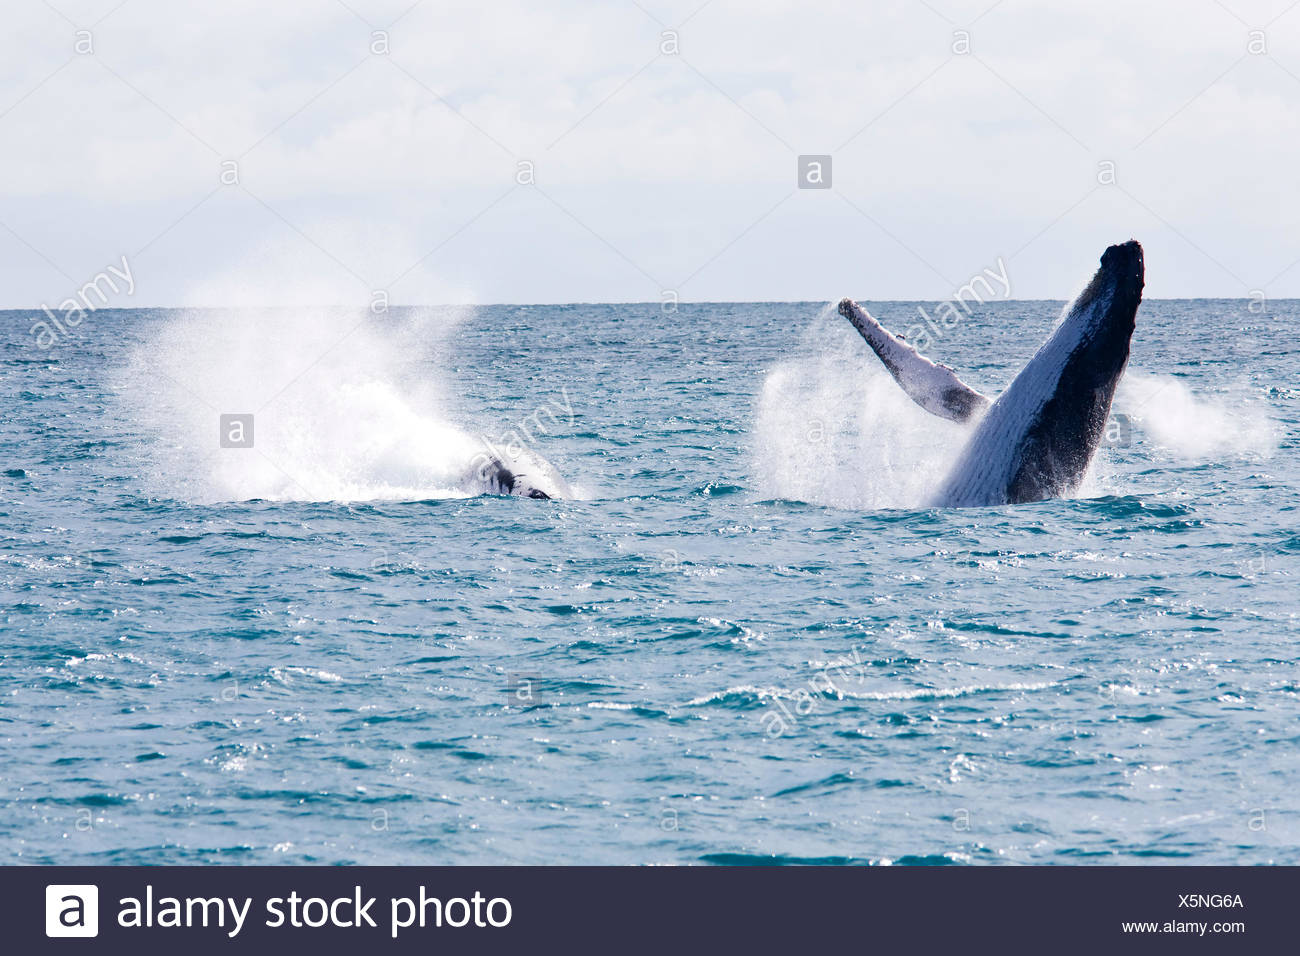 spring bouncing bounces hop skipping frisks jumping jump mammals islands brazil south america parade state common whale love in - Stock Image